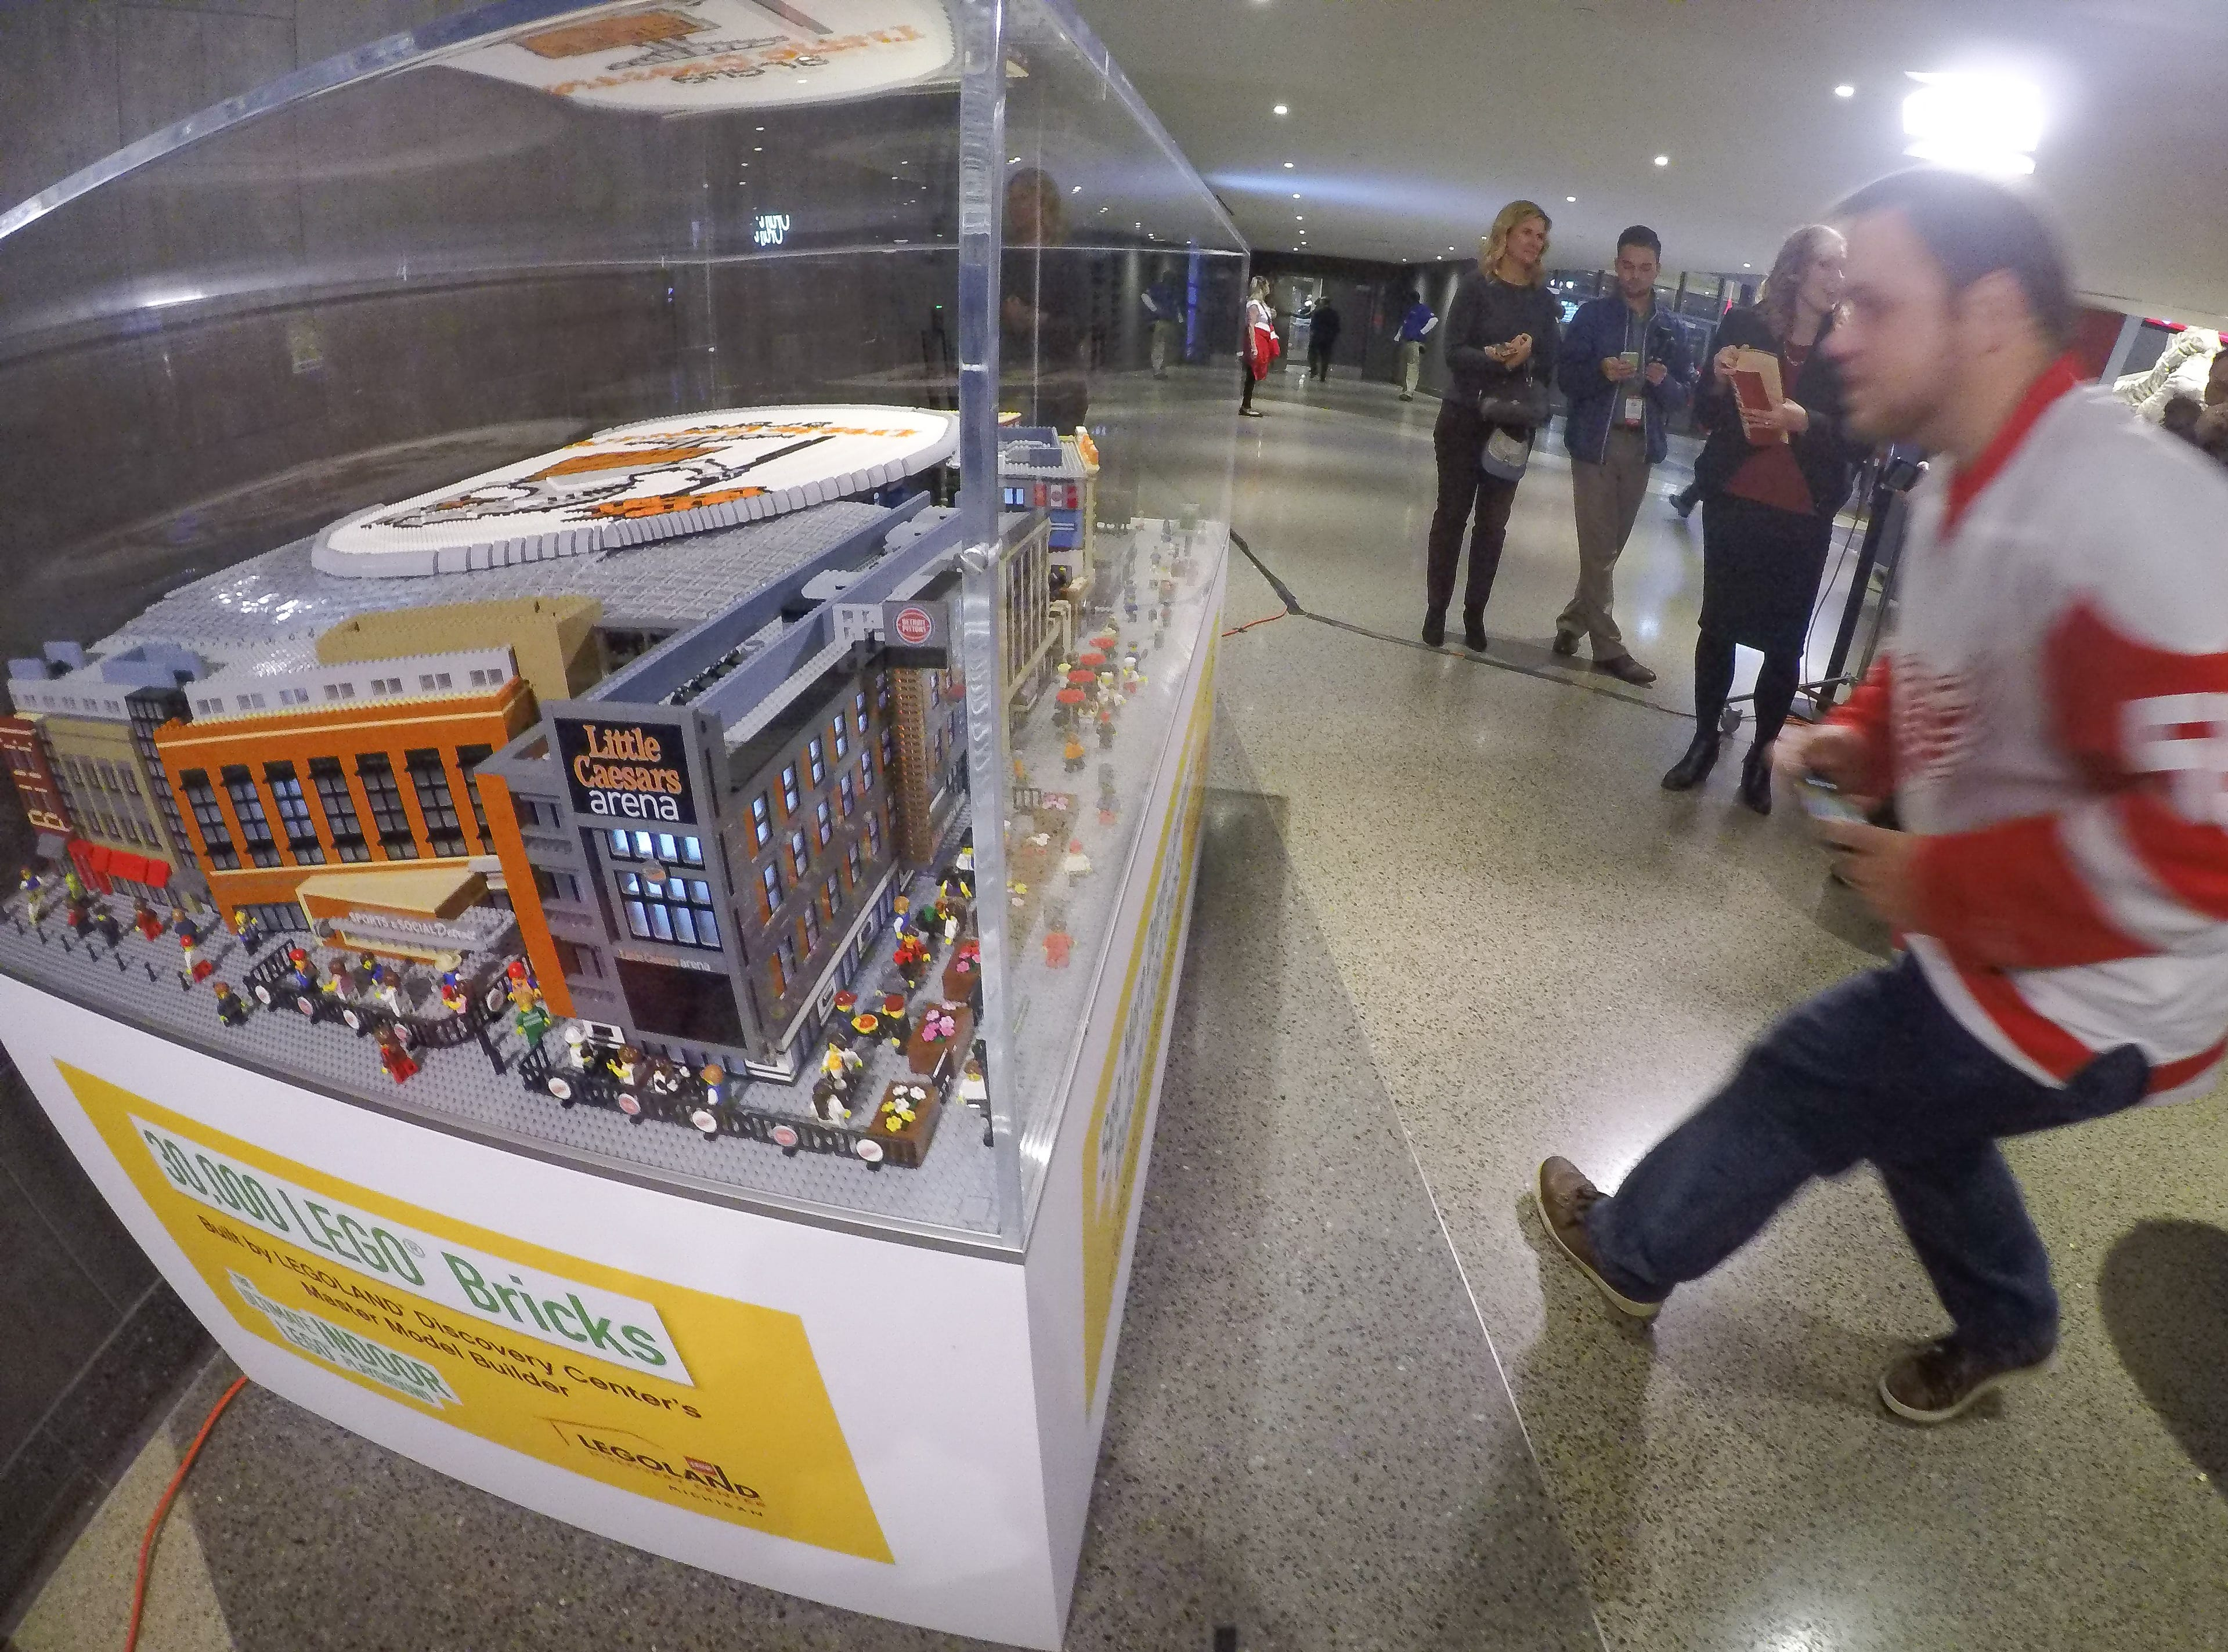 A Red Wings fan jumps in to get a close up picture of the 30,000-piece model of Little Caesars Arena, now located in the northwest corner of the stadium near the Gordie Howe statue. It was unveiled during Monday's game.